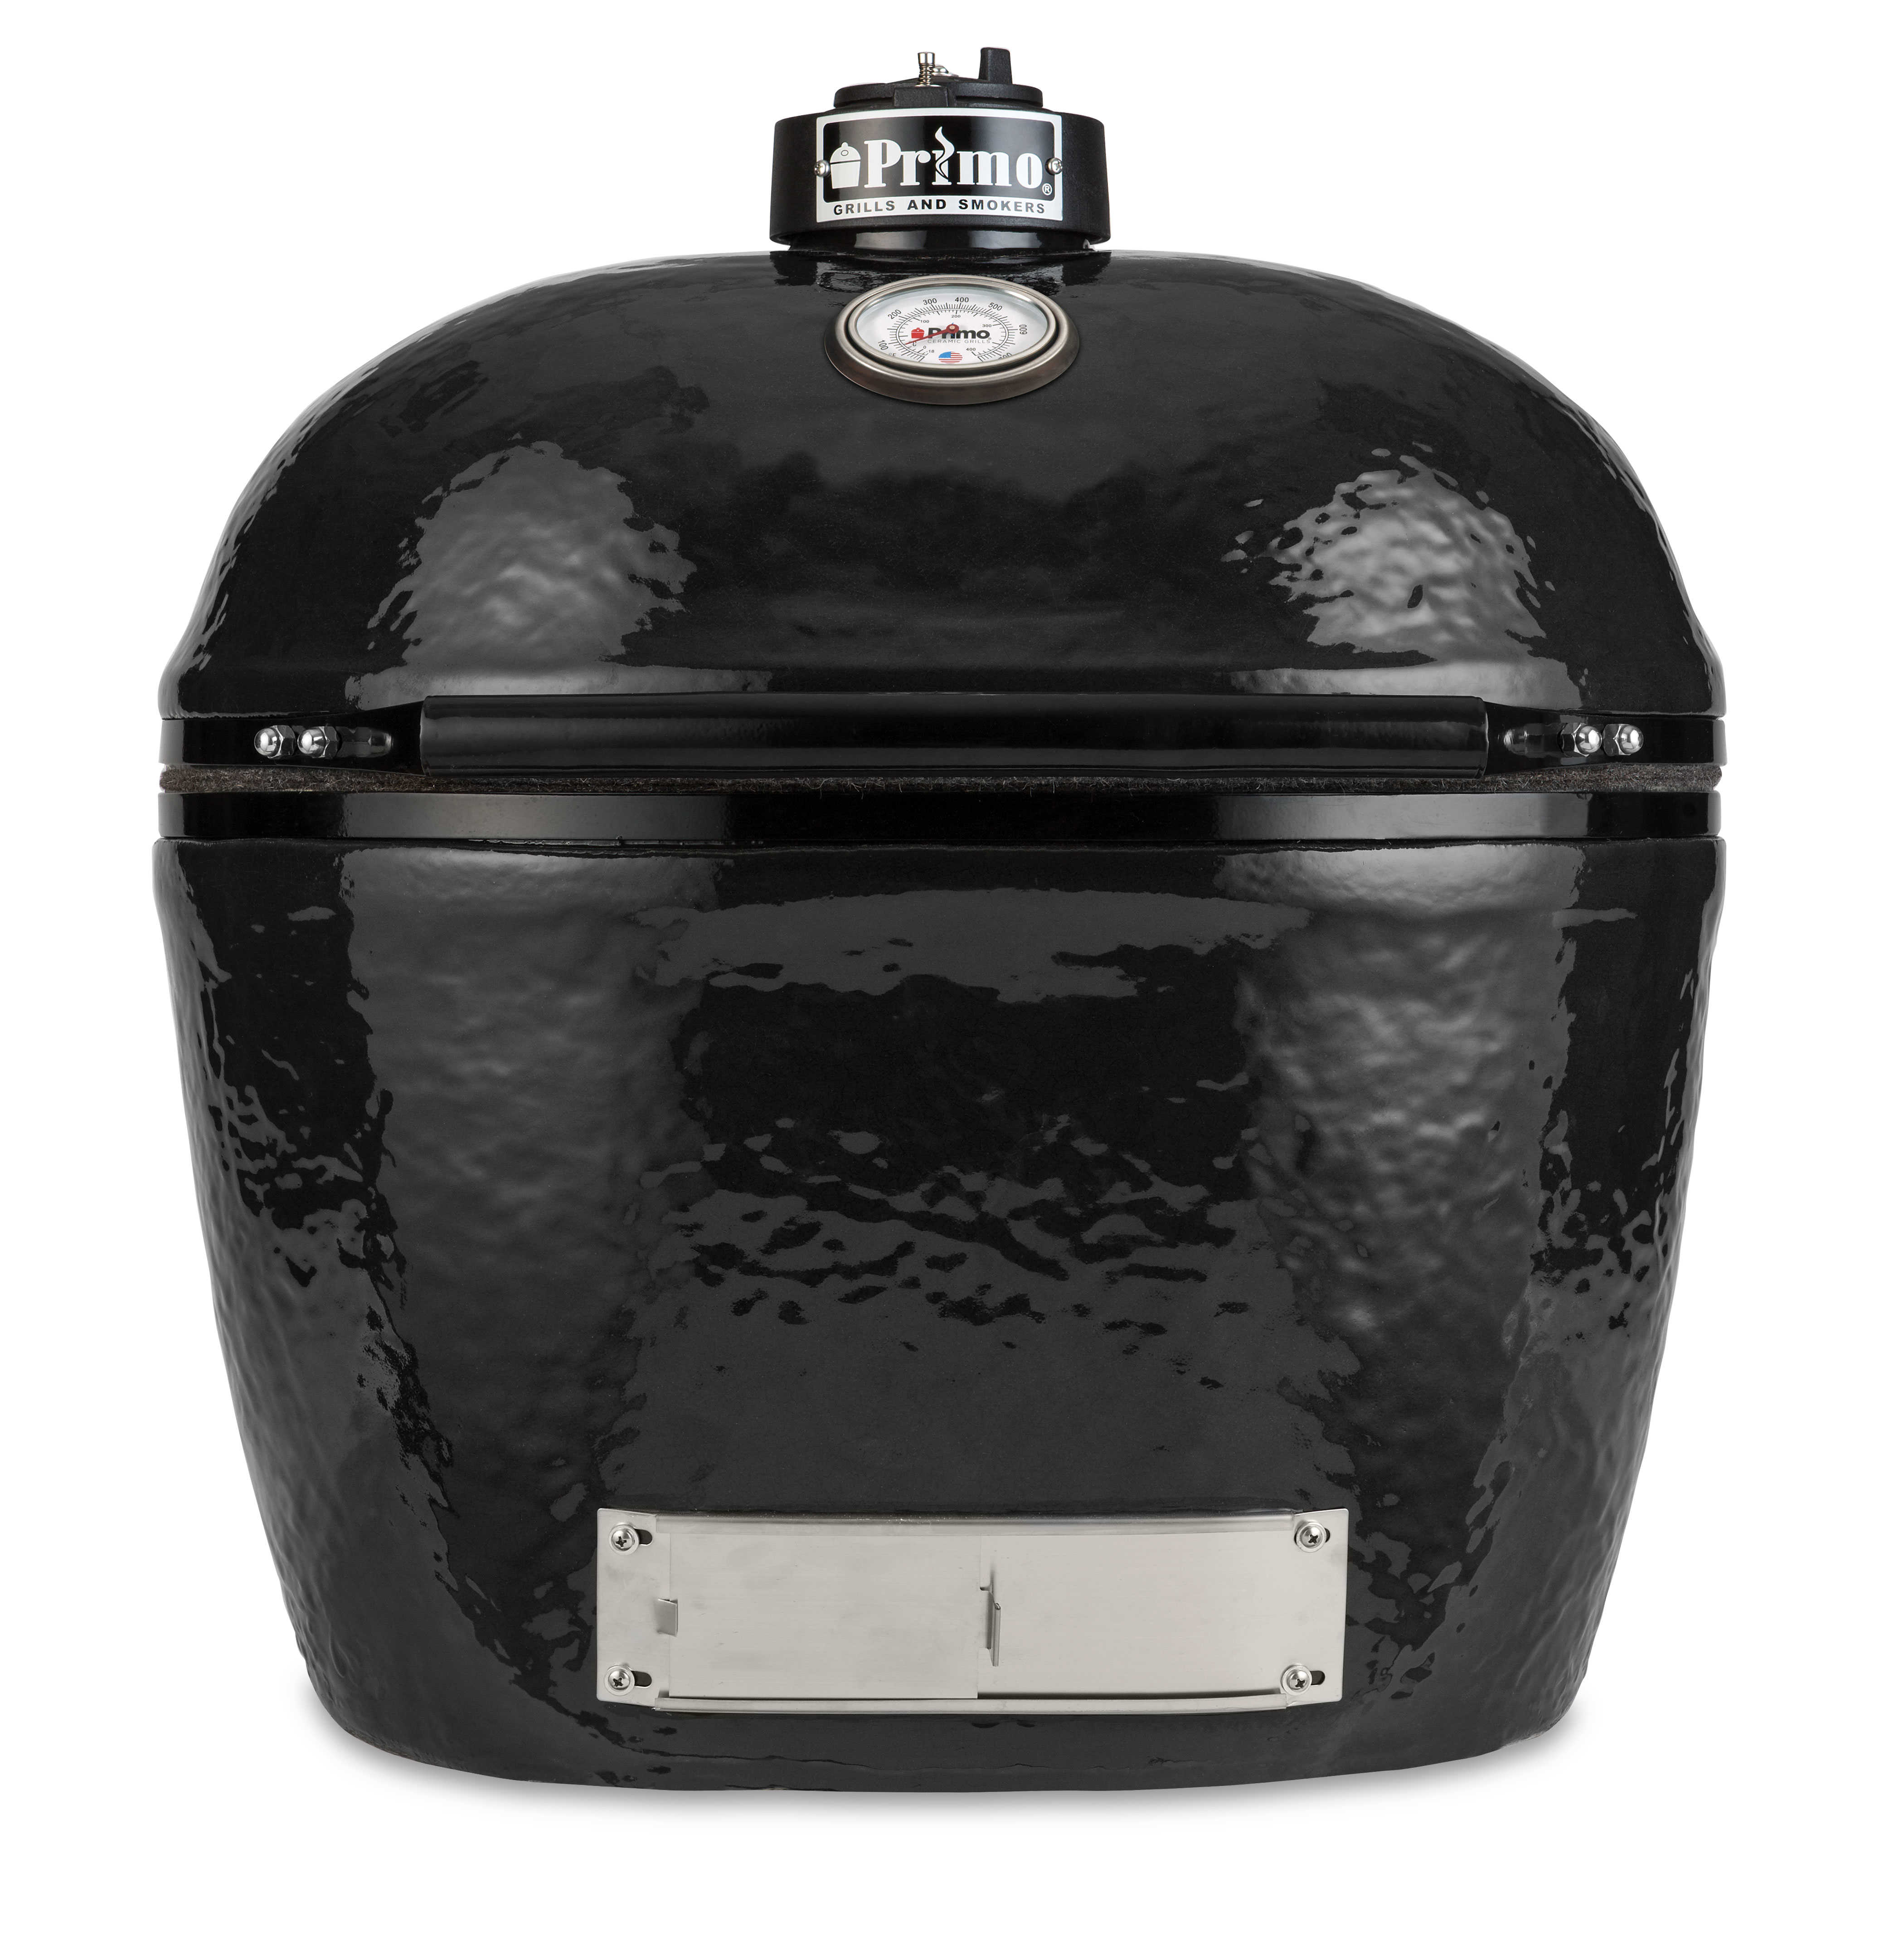 Primo Ceramic Charcoal Smoker Grill - Oval XL 400 - New ...